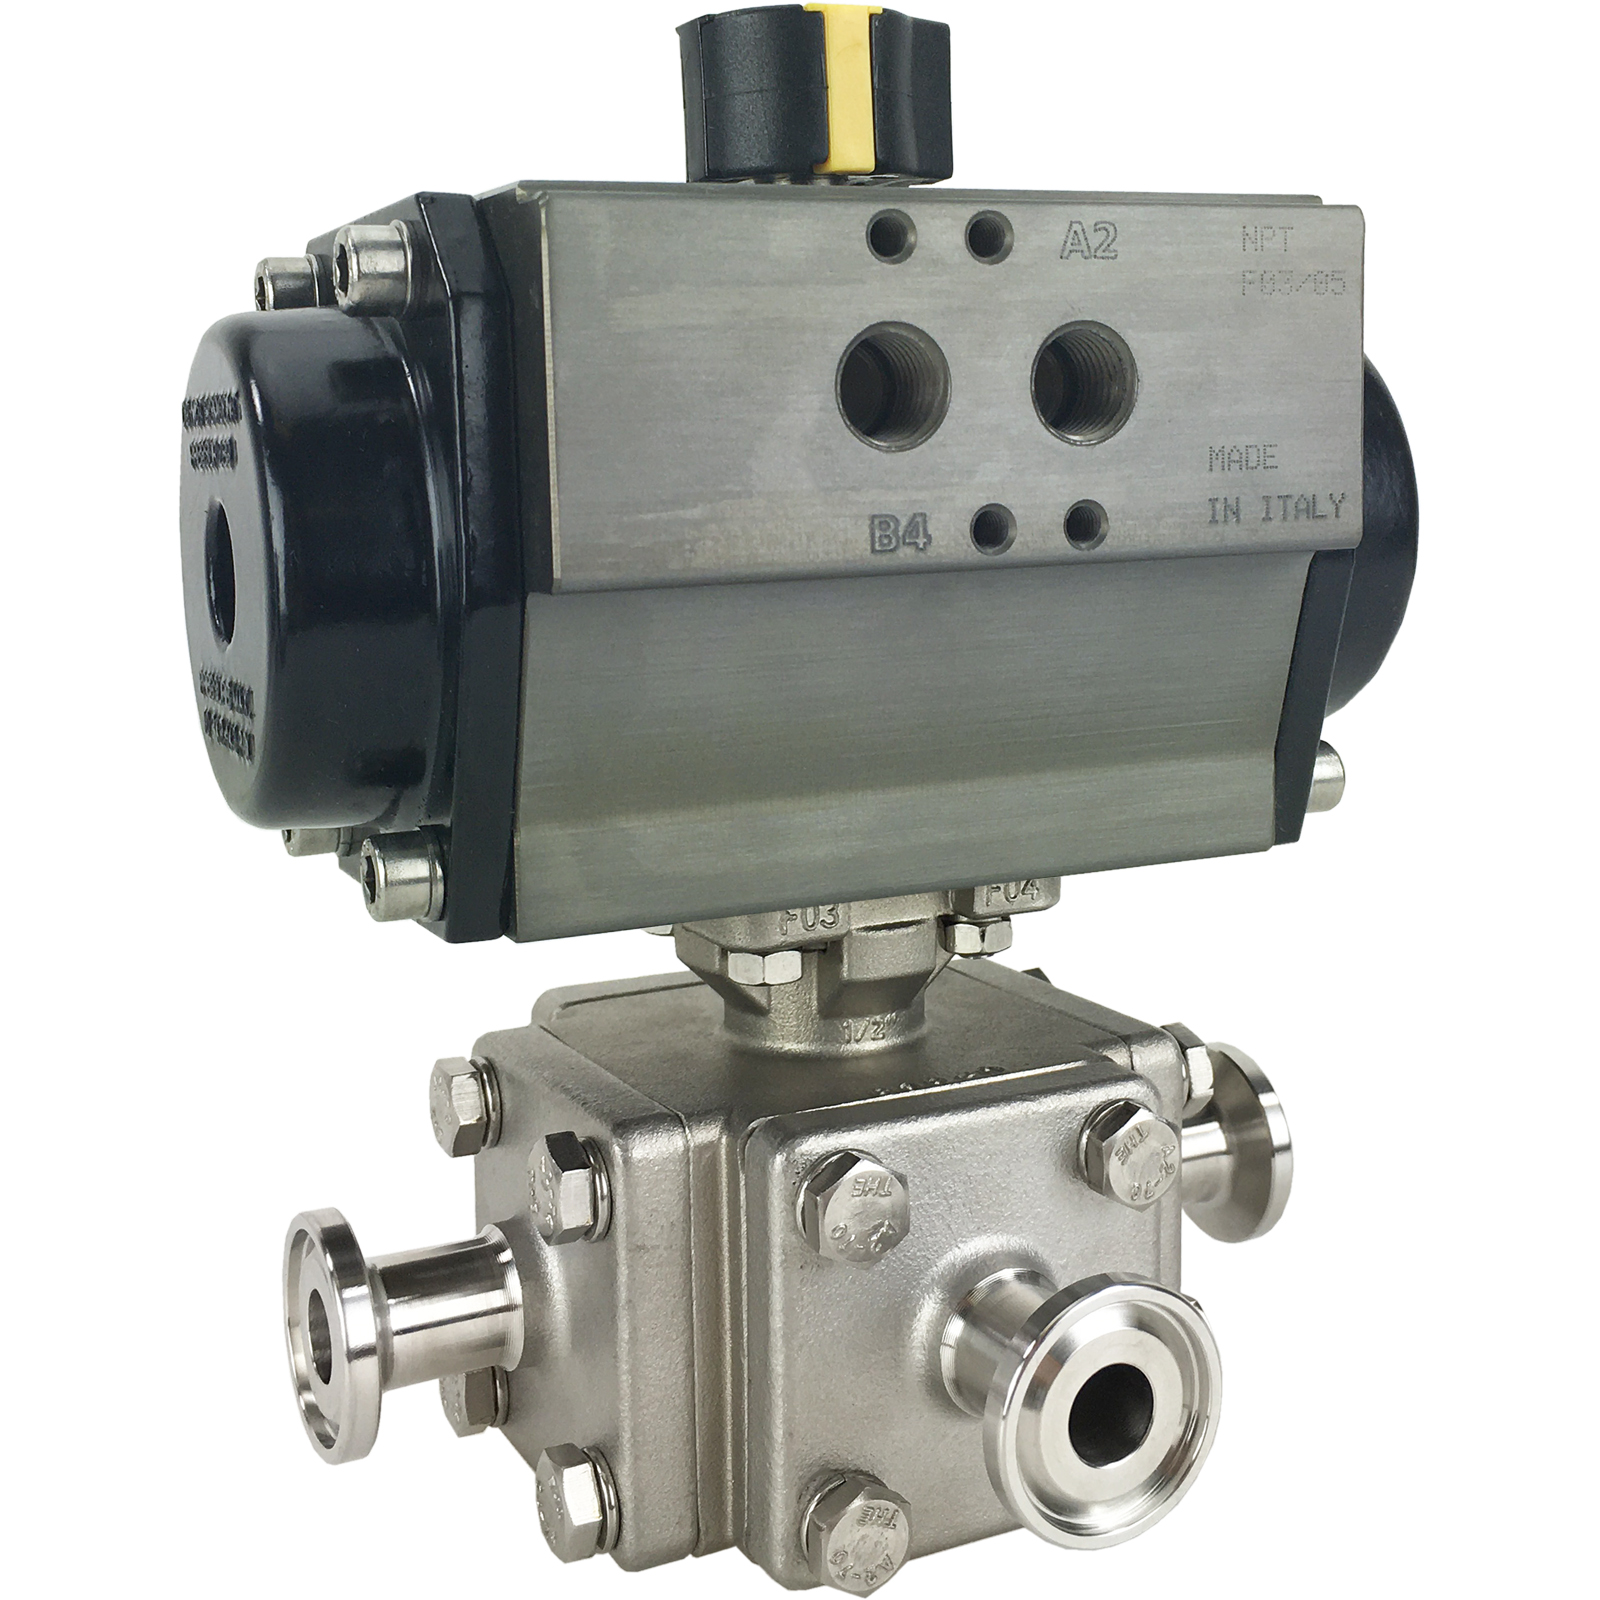 """1/2"""" Sanitary Ball Valve, T-Port, Double Acting Rack & Pinion, Tri-Clamp"""